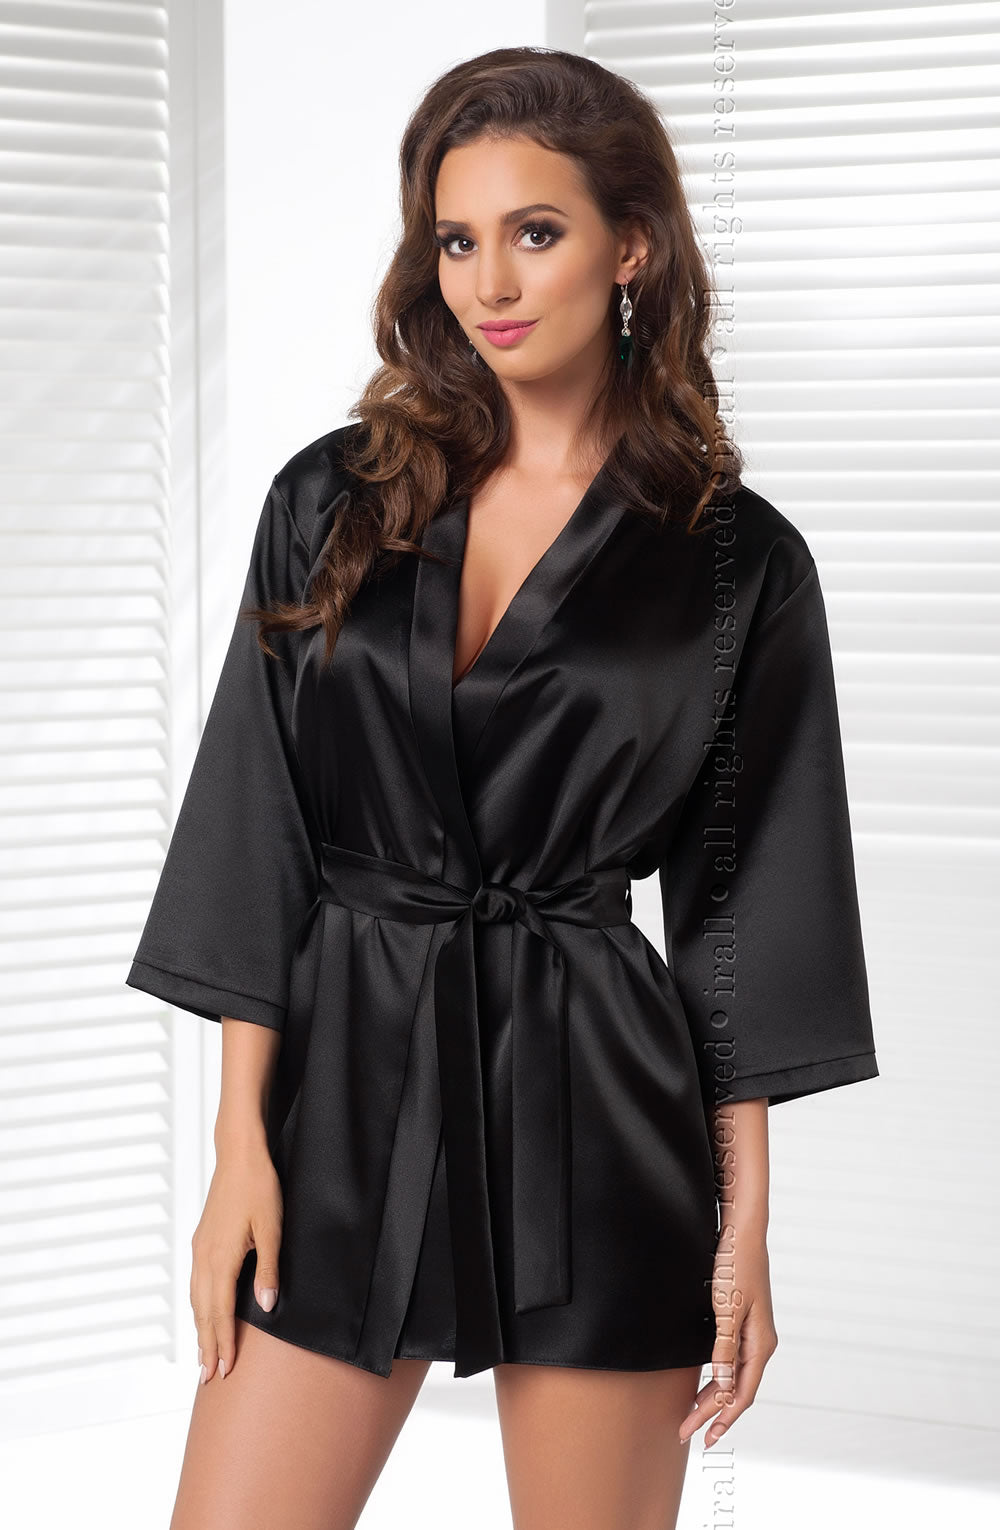 Irall Aria Black Satin Dressing Gown